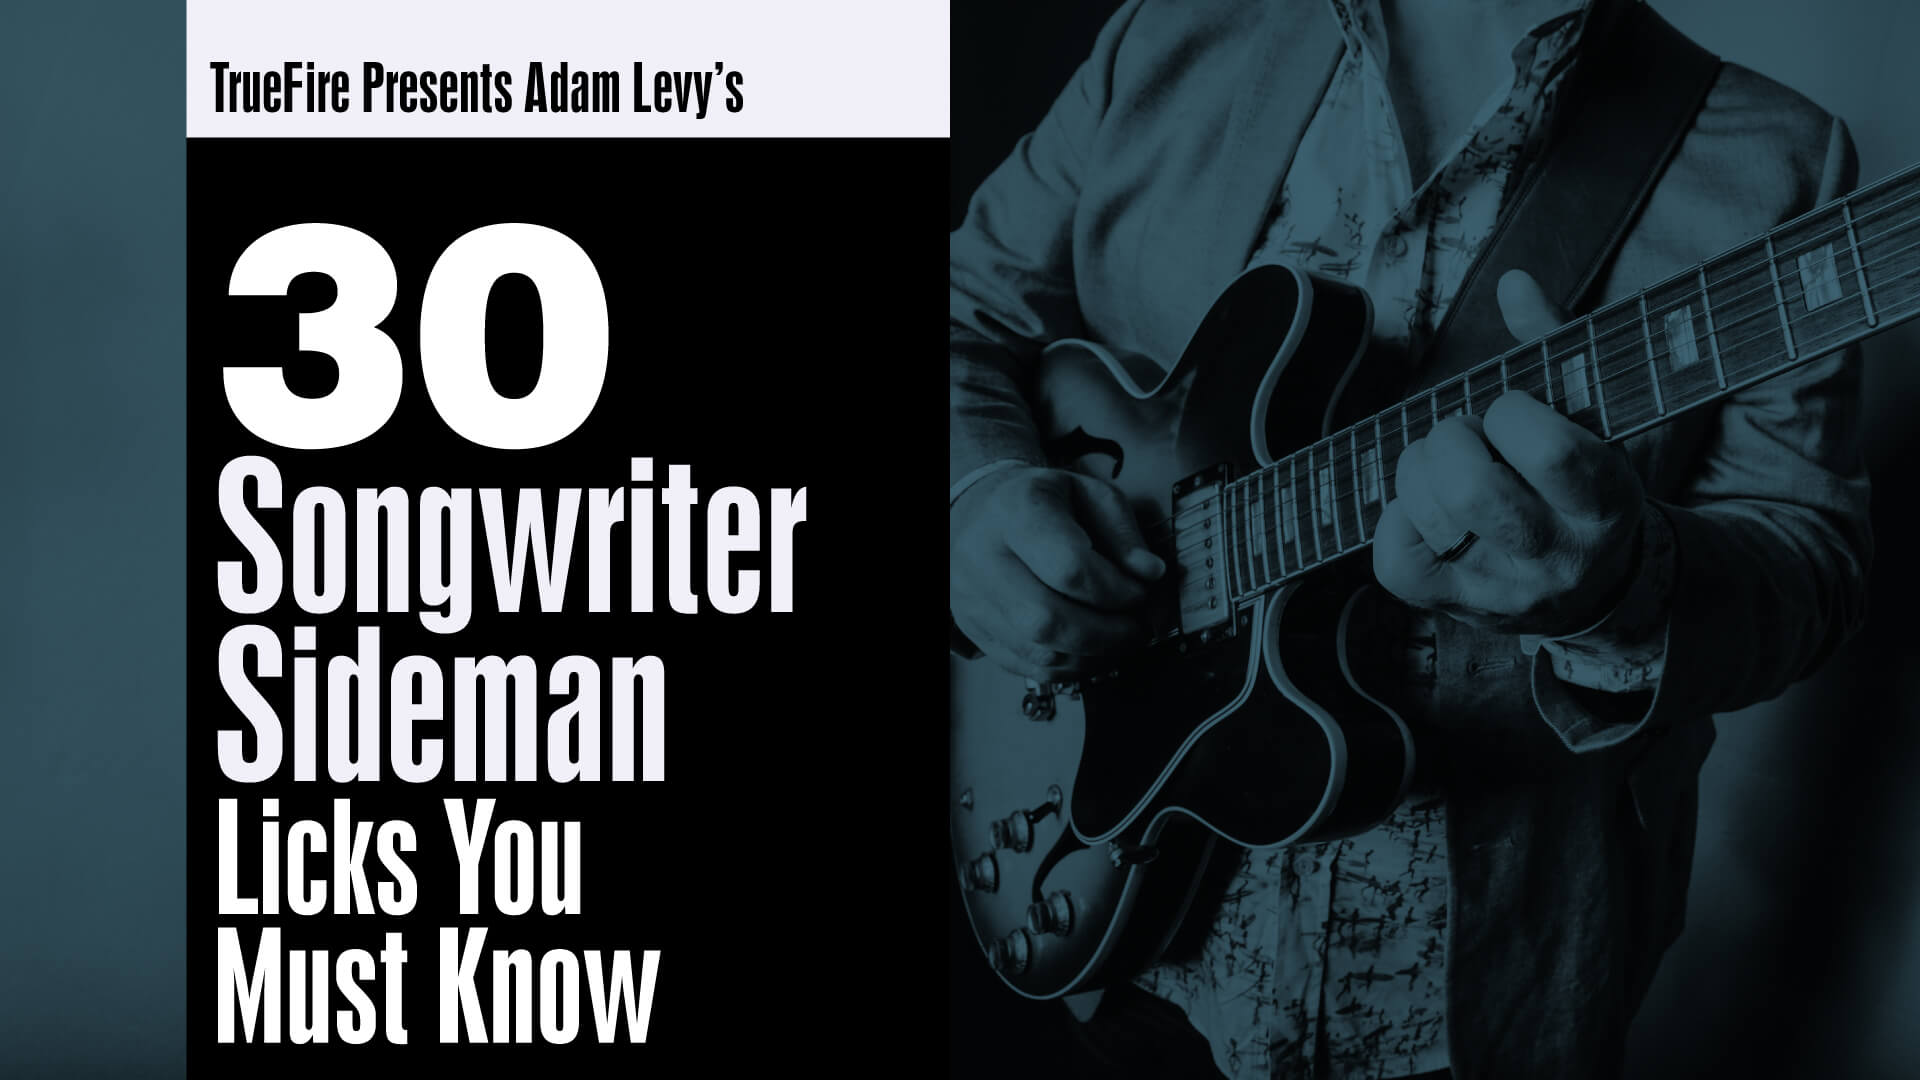 30 Songwriter Sideman Licks You MUST Know - Guitar Lessons - Adam Levy -  TrueFire